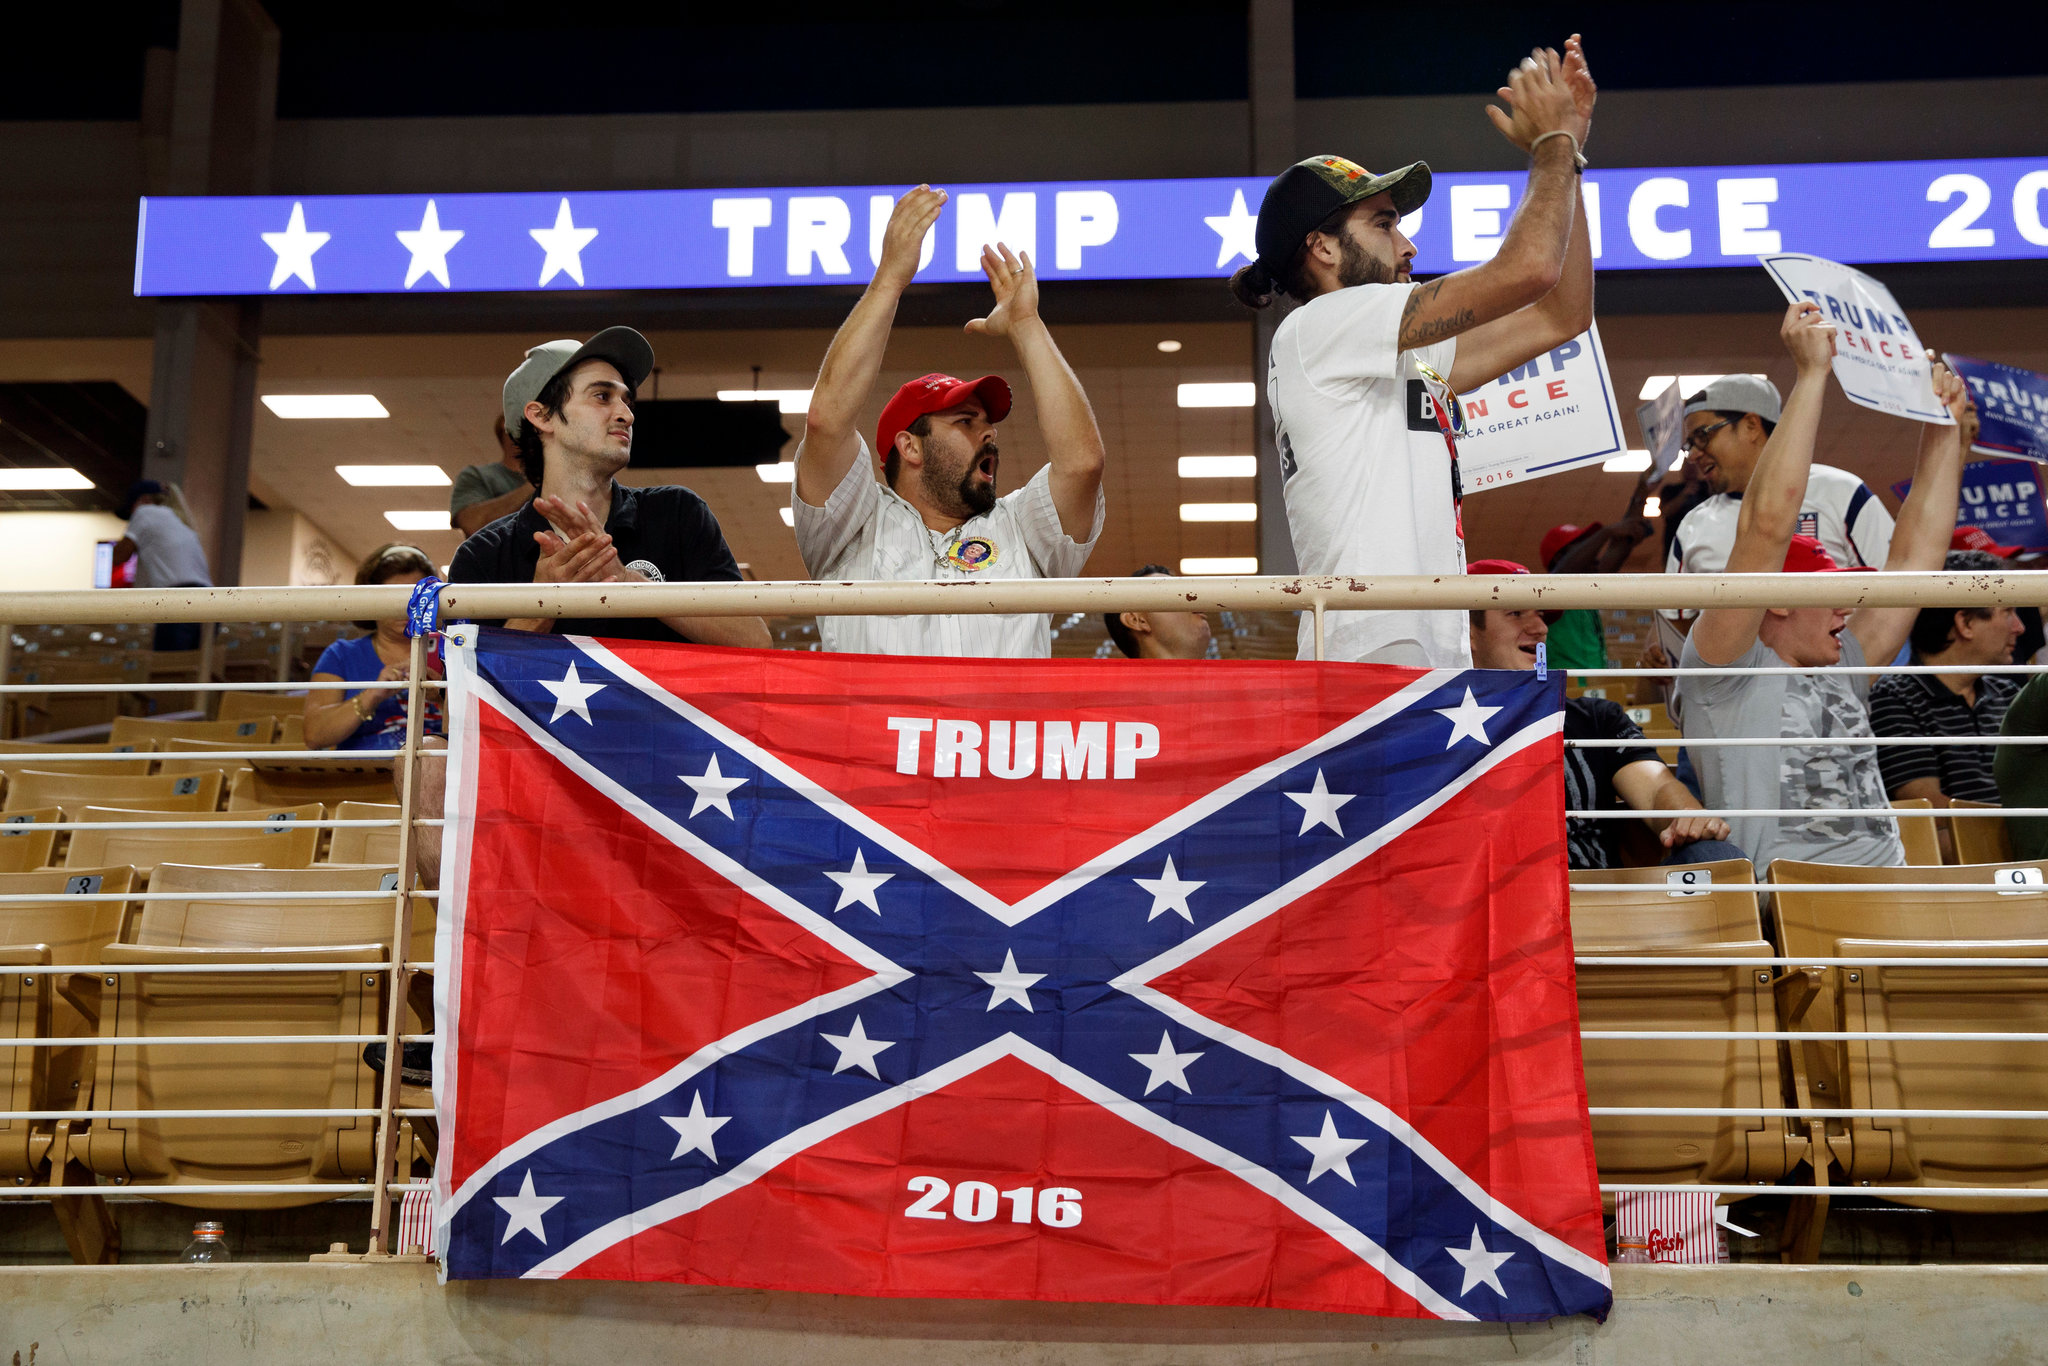 Trump supporters with Confederate flag